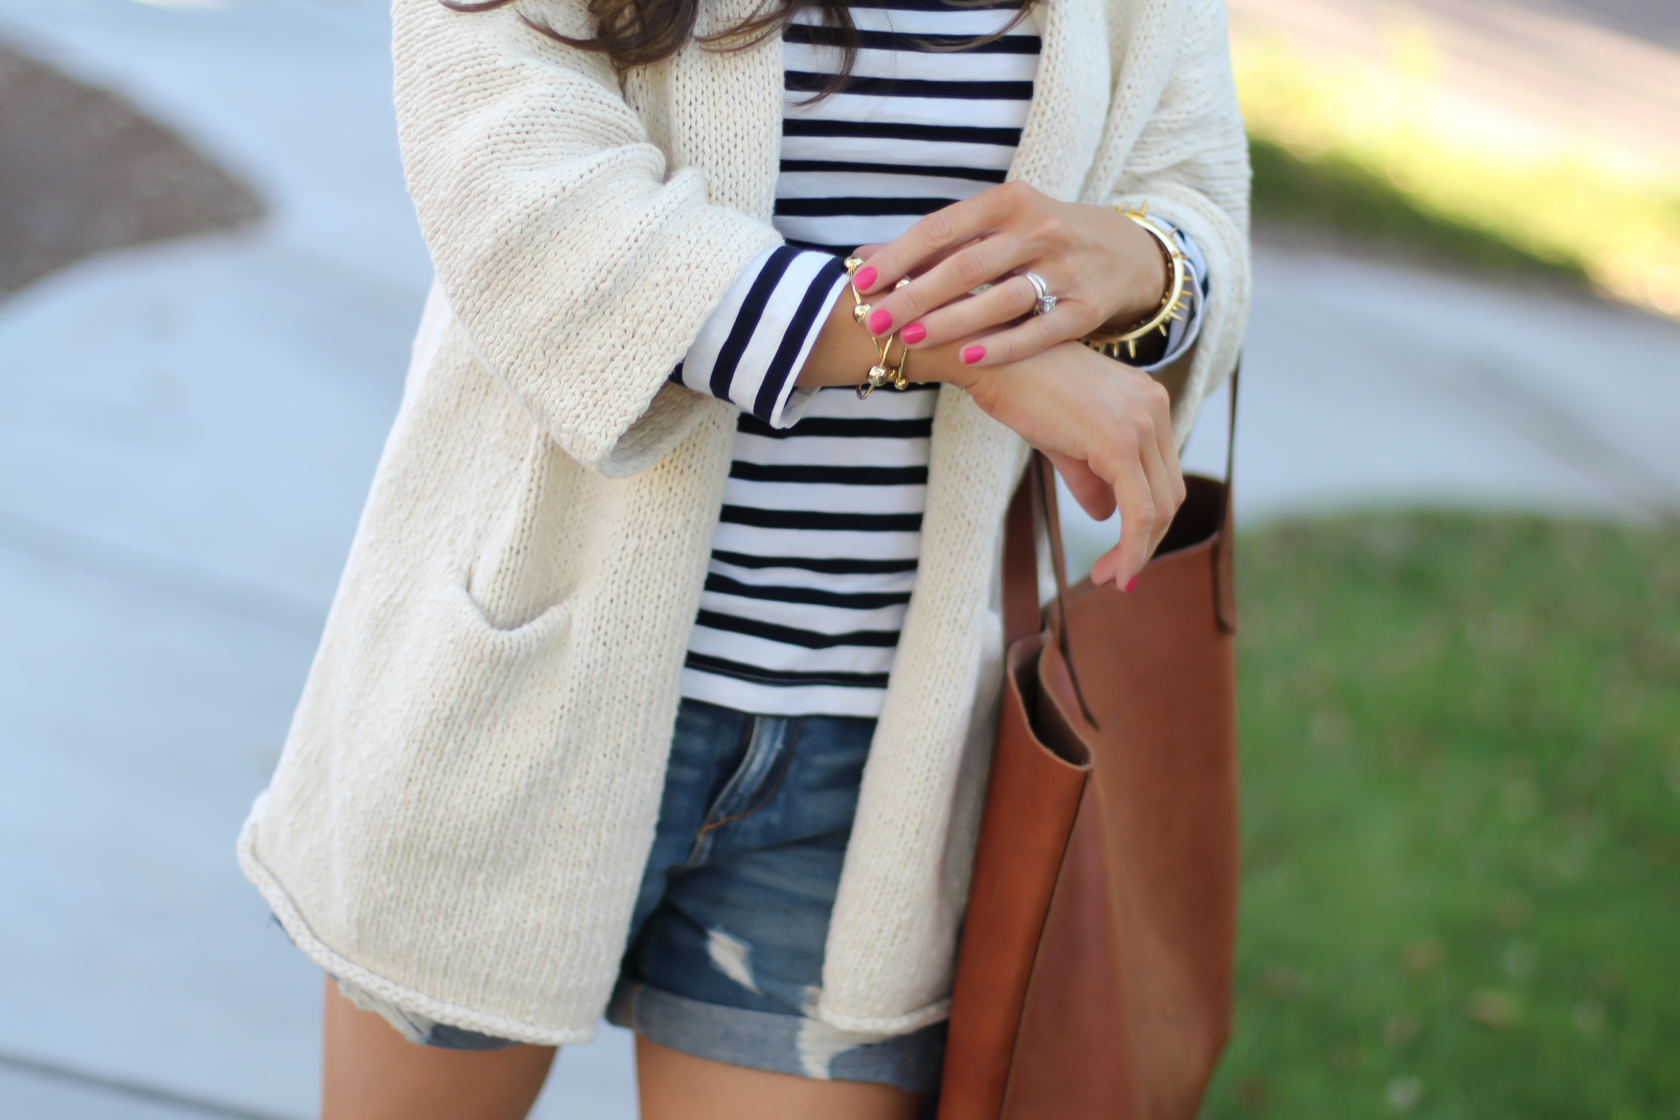 Beige Summer Sweater, Striped Tee, Distressed Denim Shorts, Red Espadrille Sandals, Tan Leather Tote